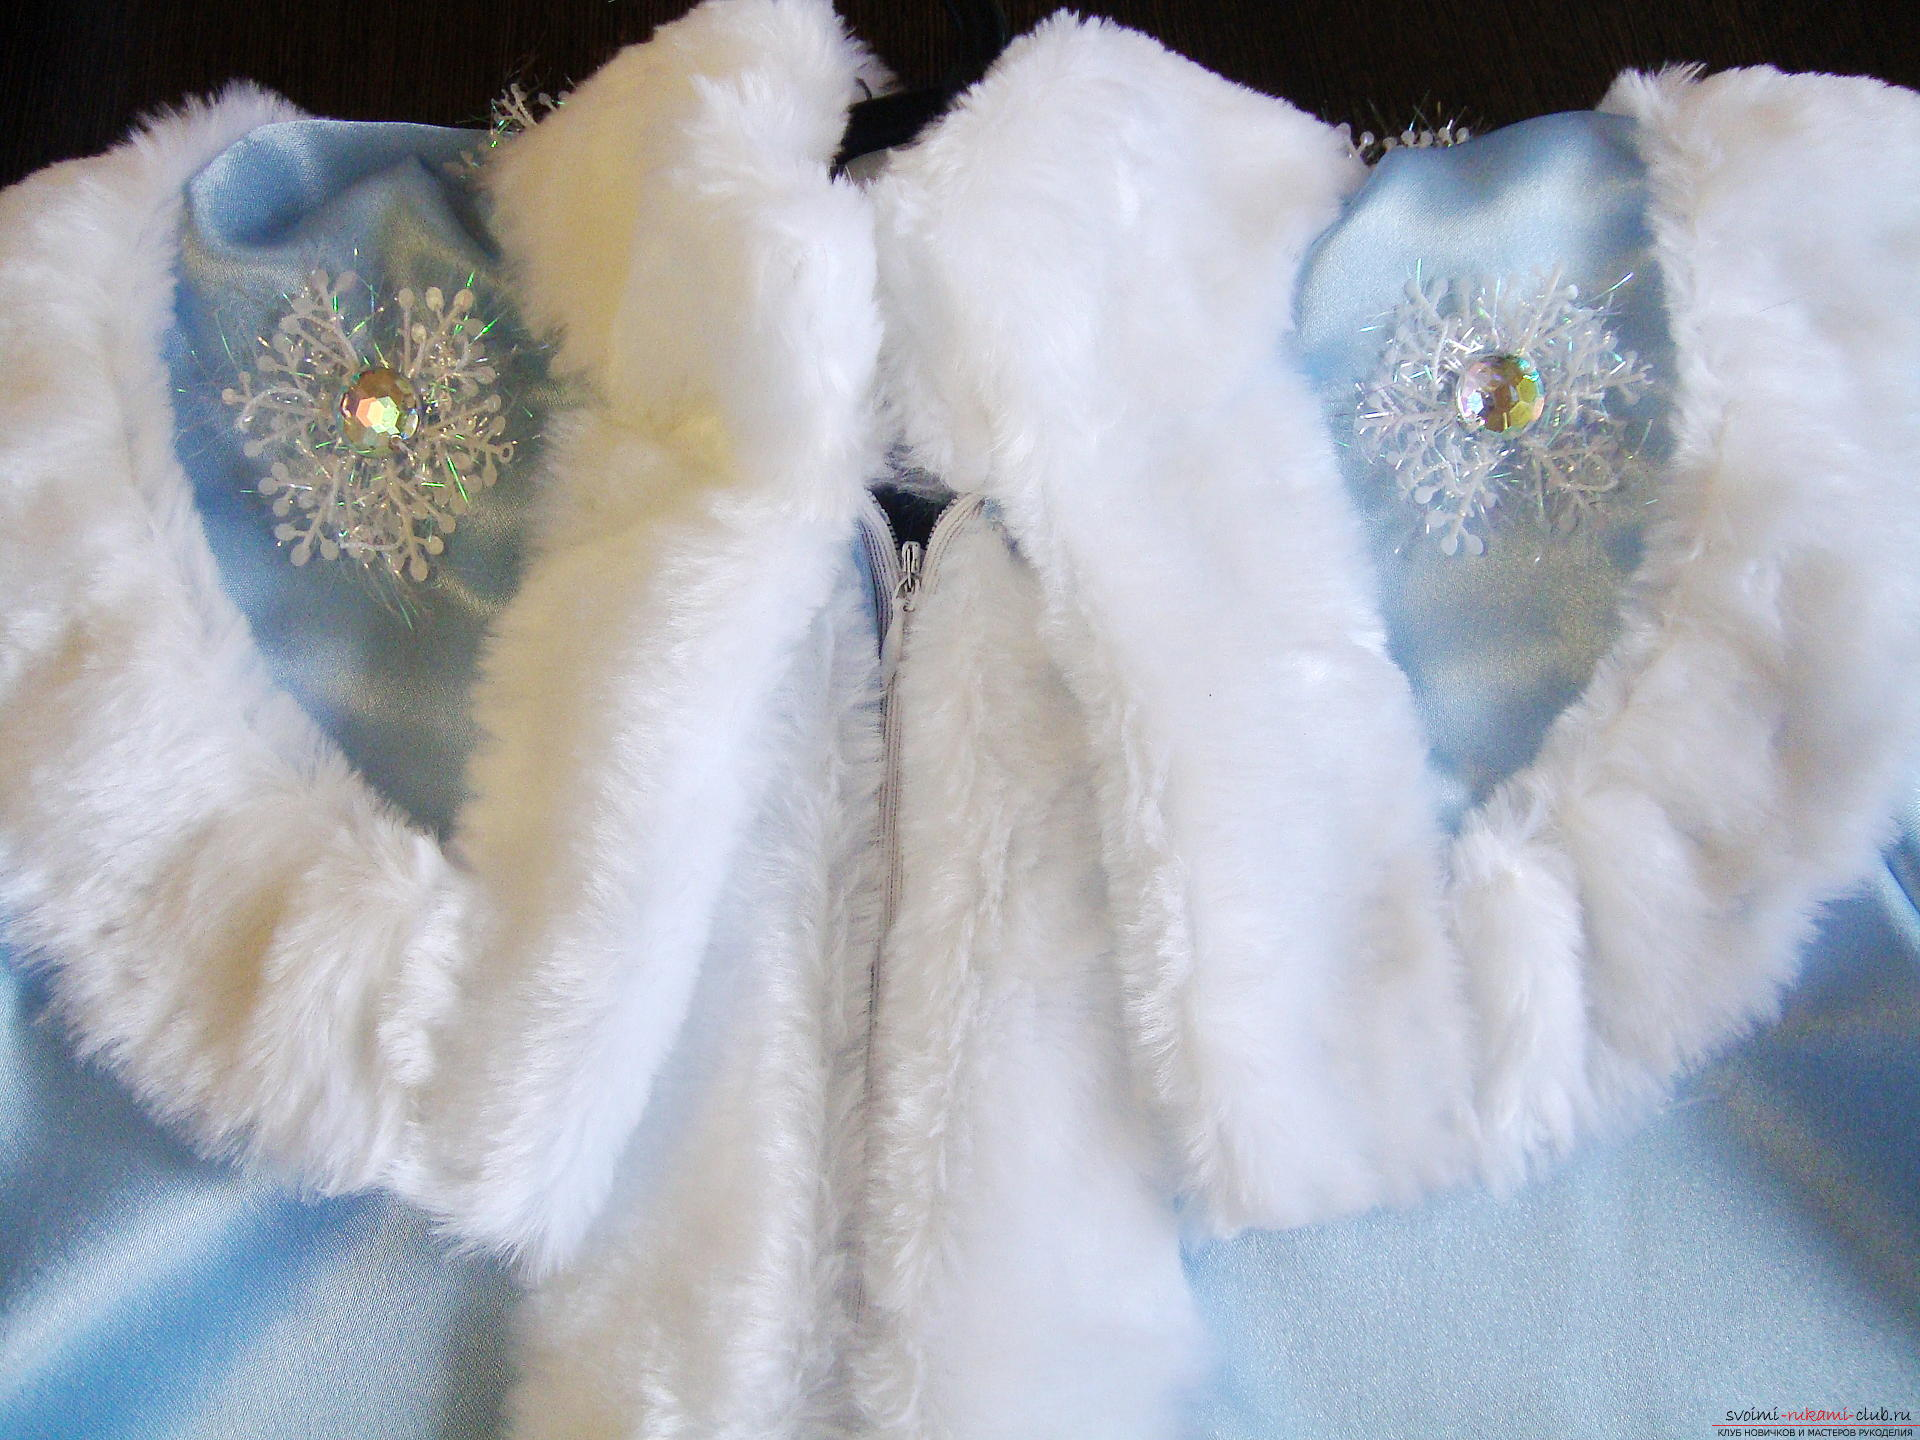 Carnival costumes for the girl's mother can sew by hand. The Snow Maiden costume will appeal to many girls .. Photo №18